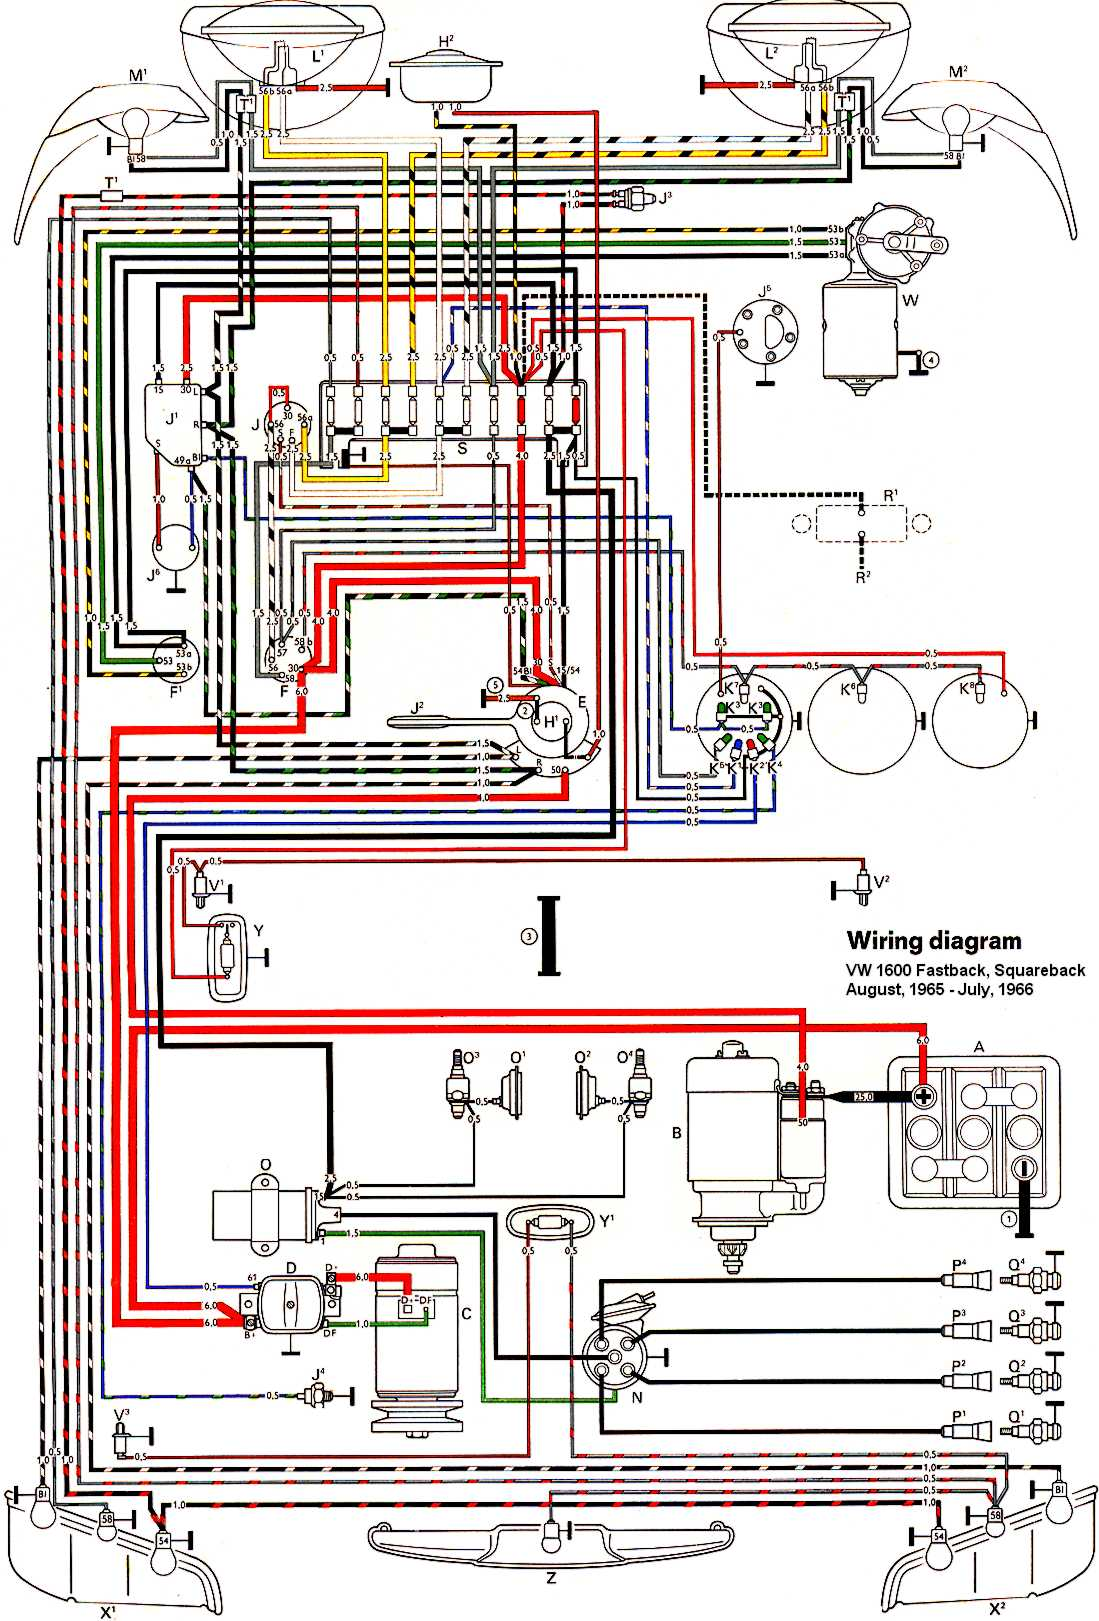 thesamba com type 3 wiring diagrams rh thesamba com Electrical Wiring Symbols Home Electrical Wiring Diagrams